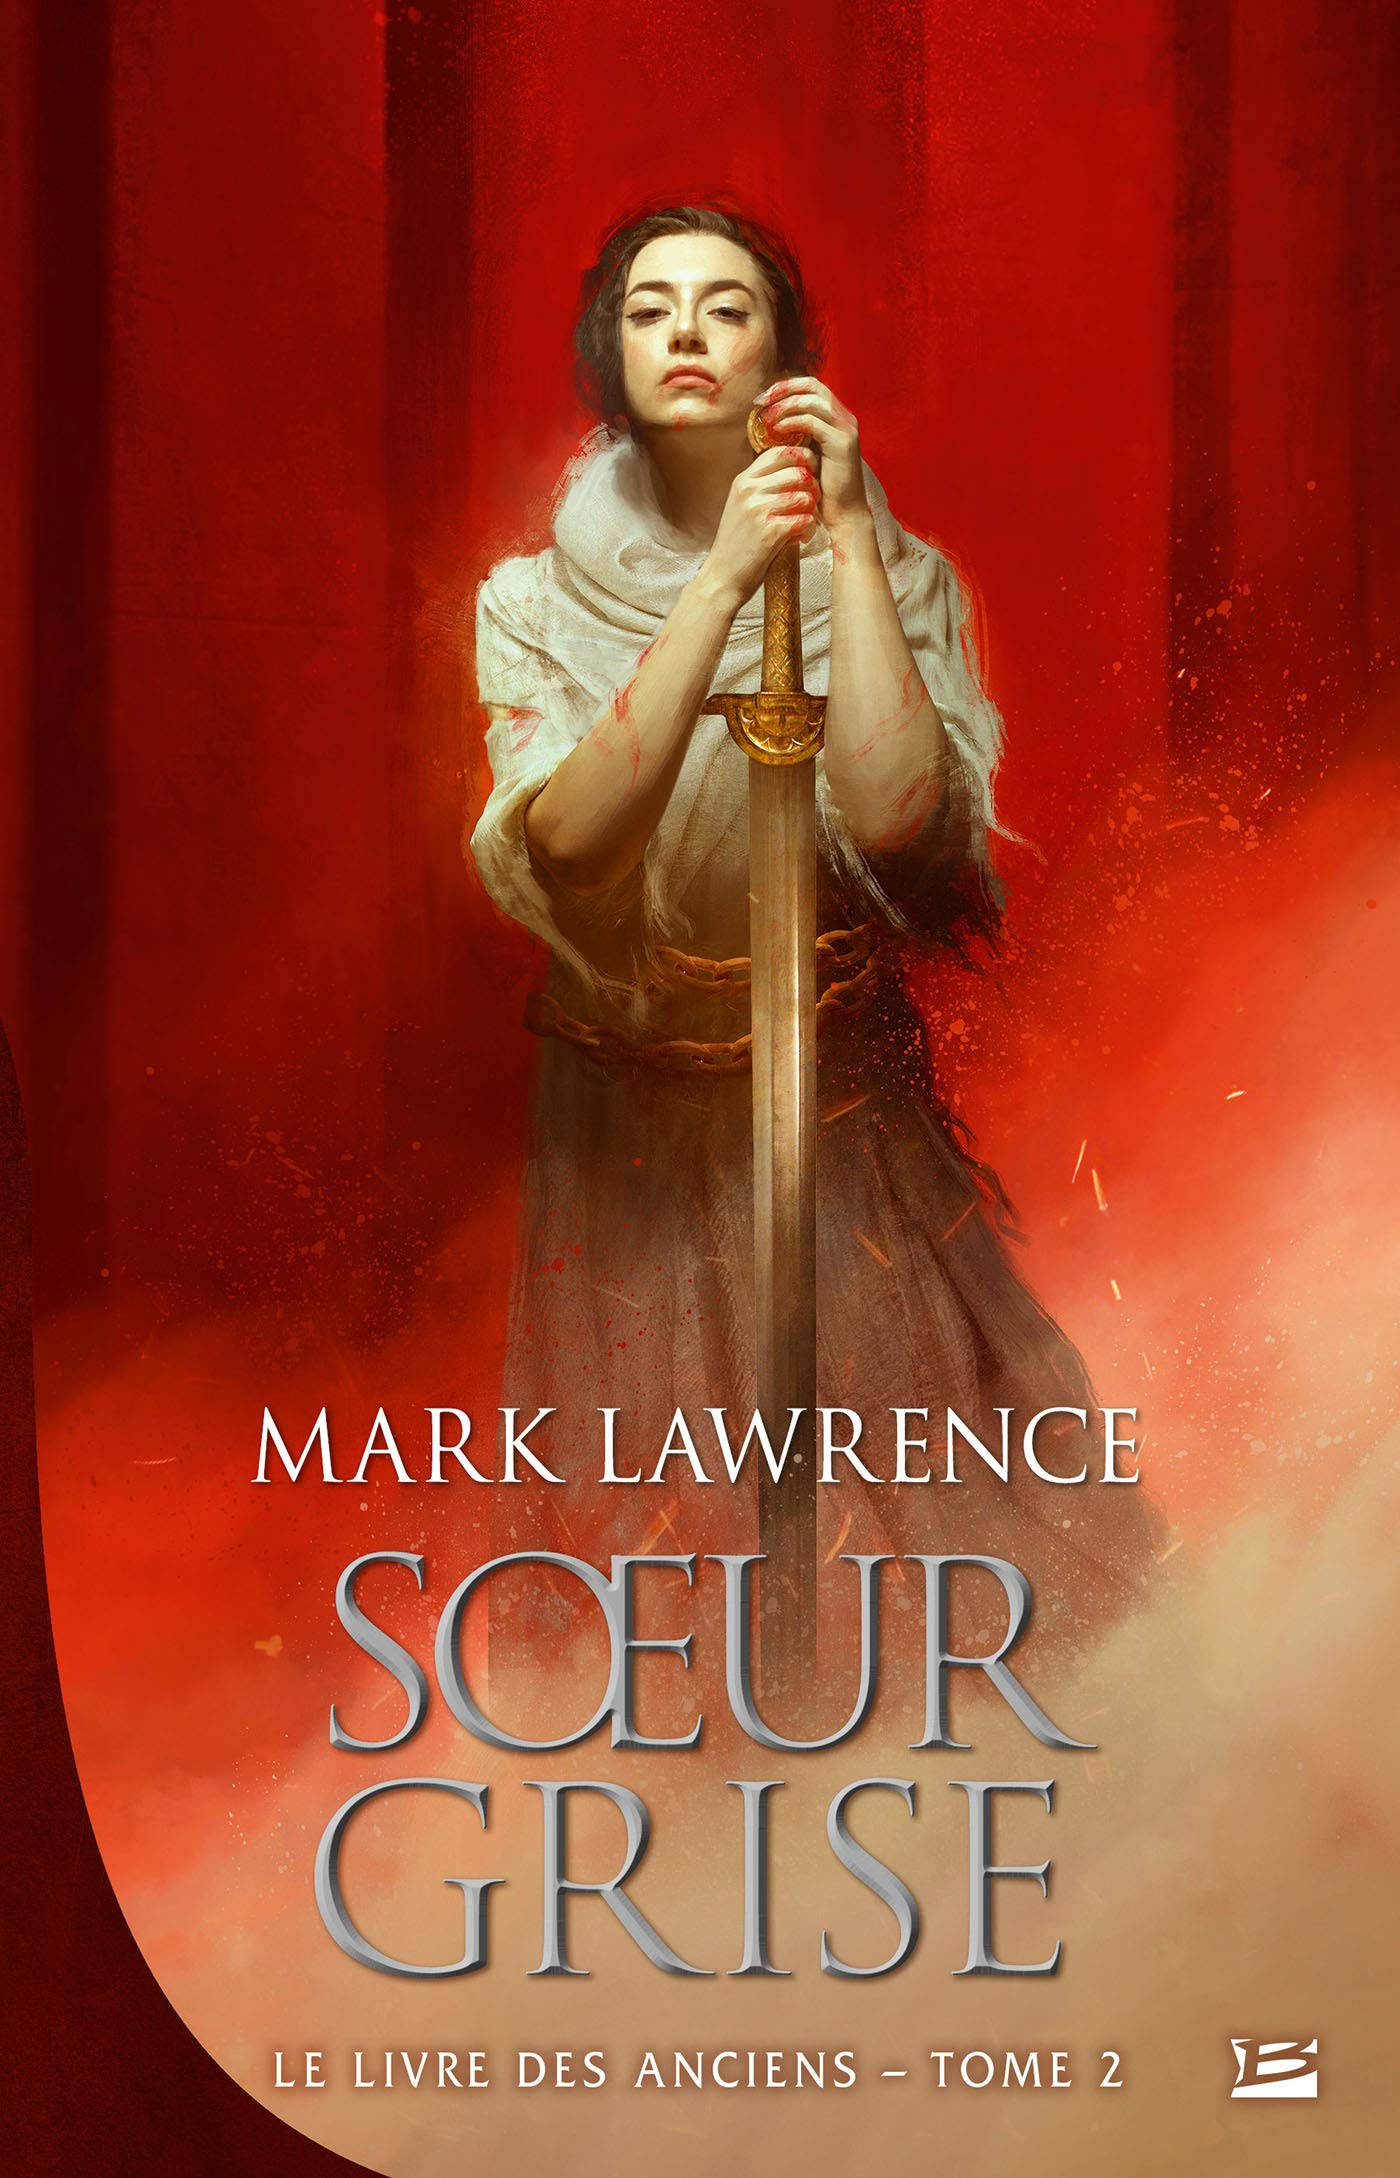 mark lawrence soeur grise